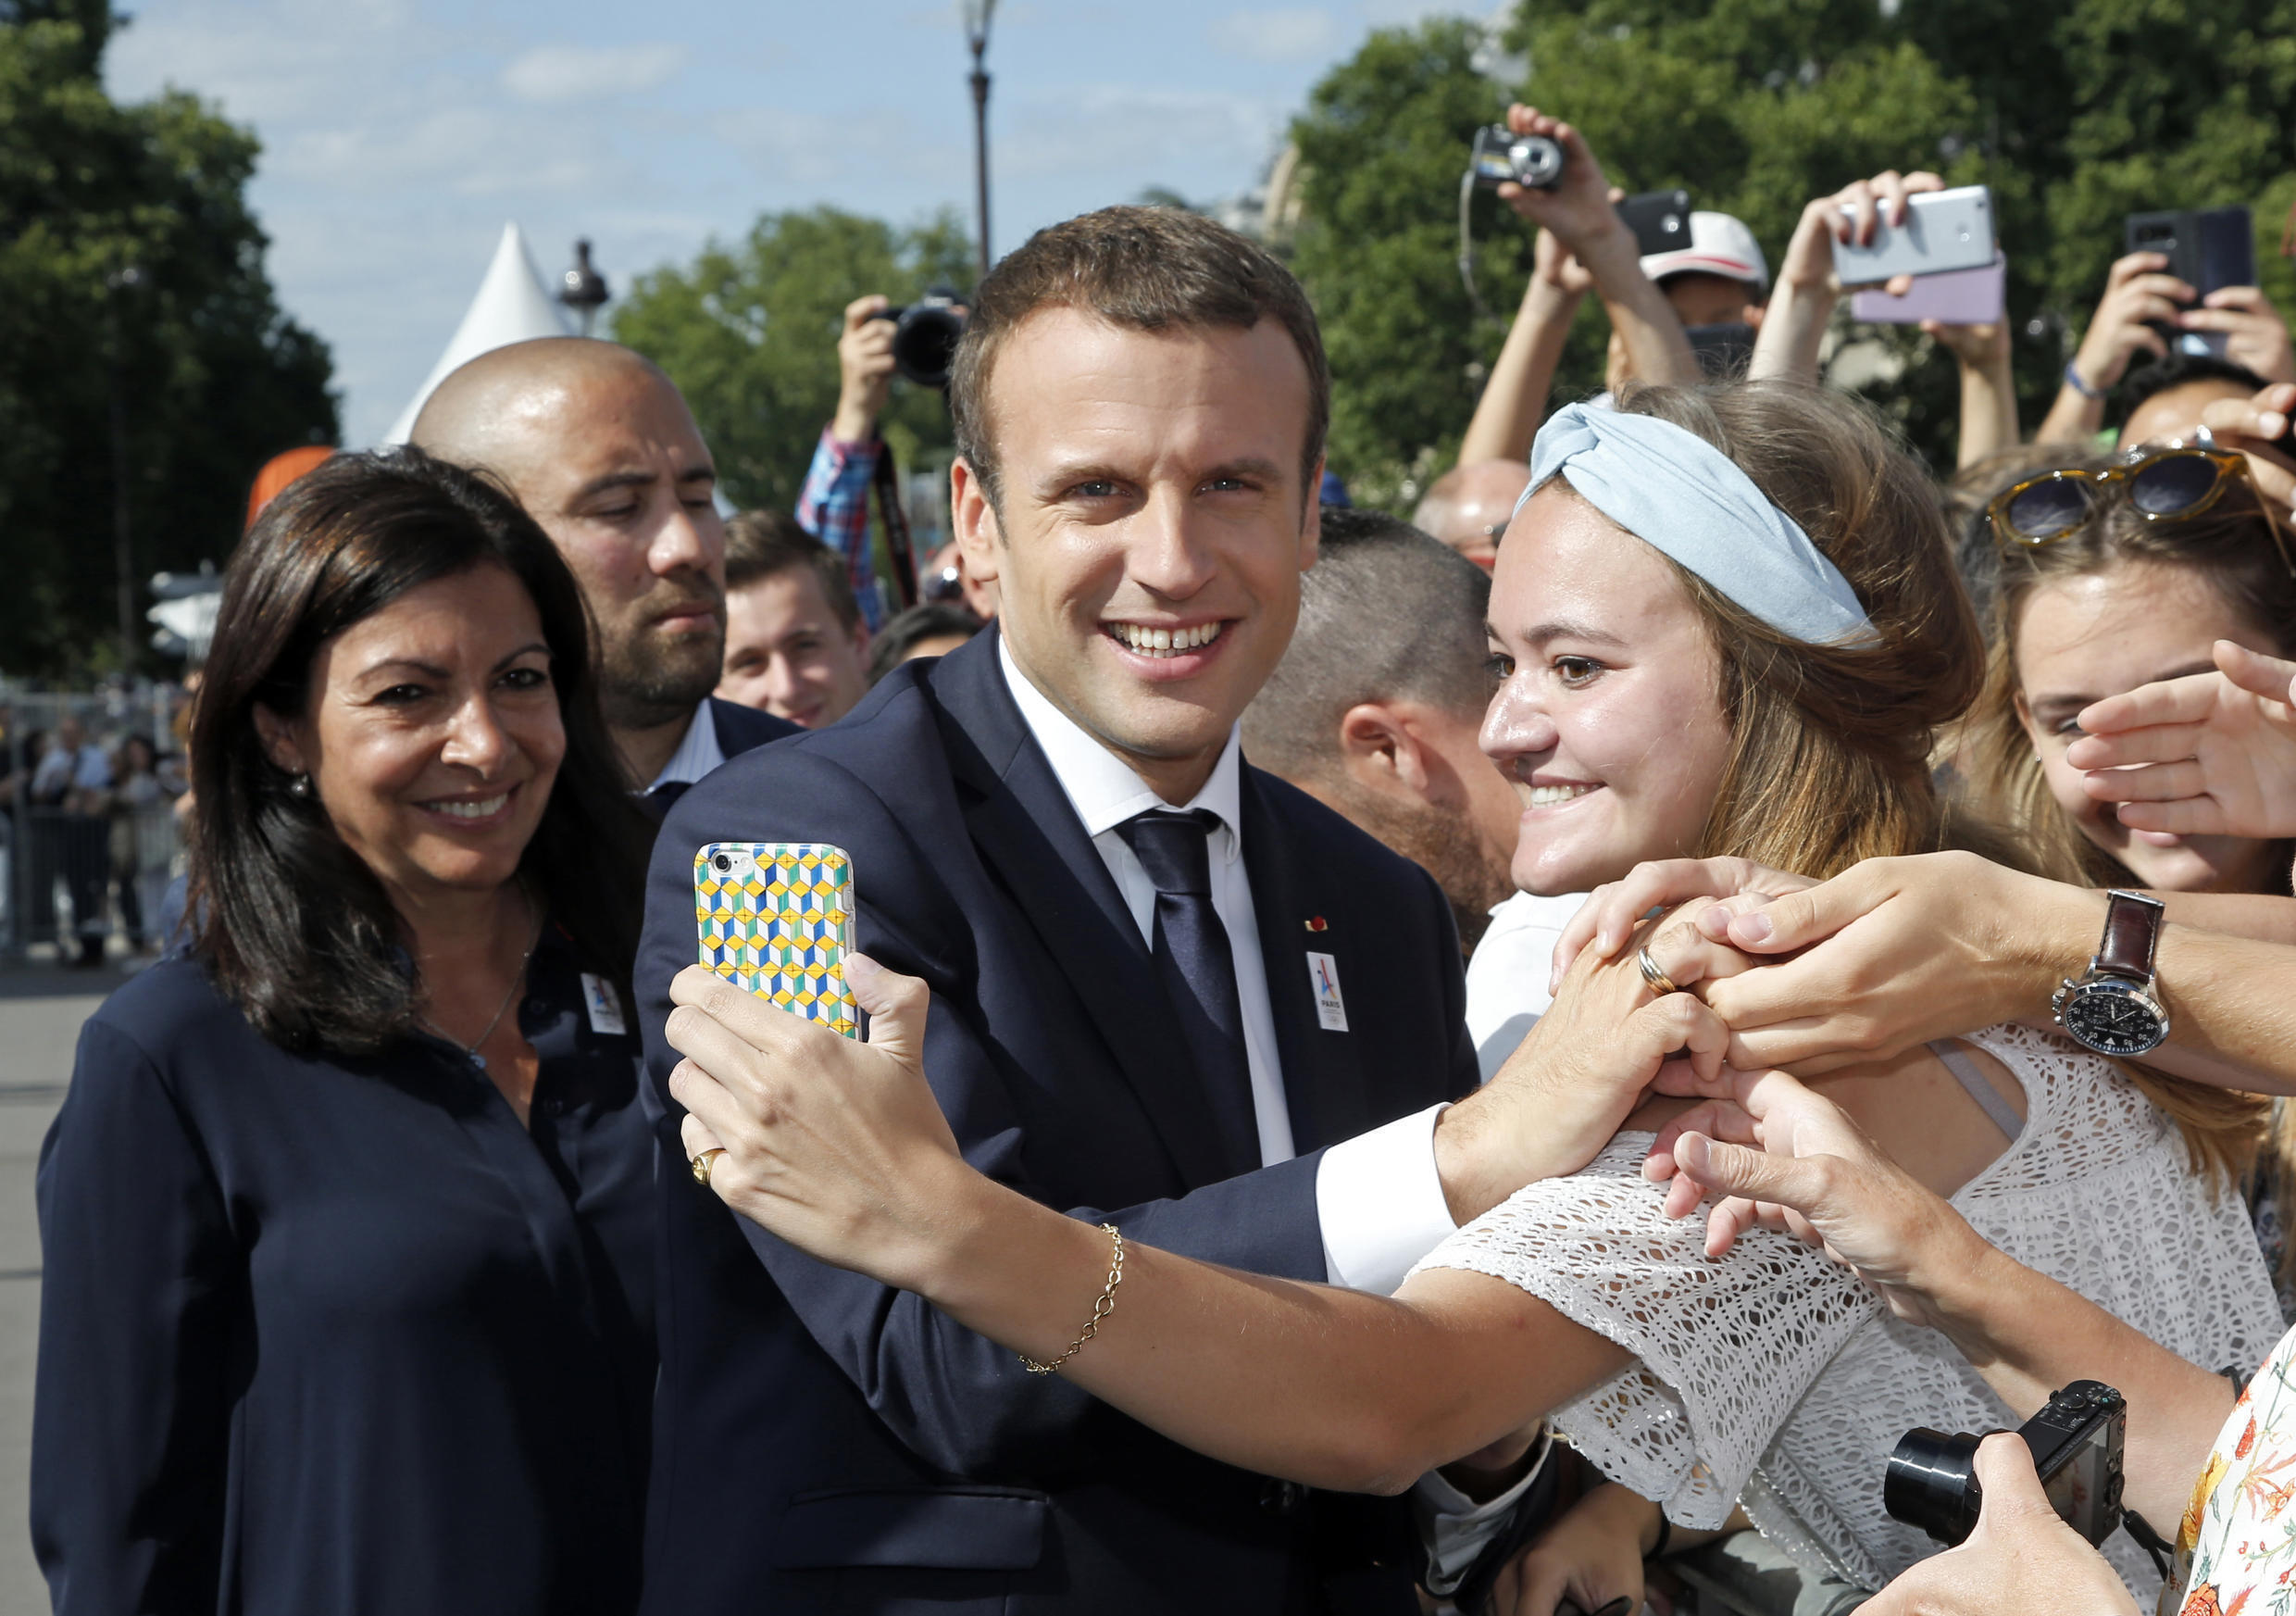 French President Emmanuel Macron (C) poses for a 'selfie' with Paris Mayor Anne Hidalgo (L) during a visit to a site on the Pont Alexandre III in Paris on June 24, 2017.